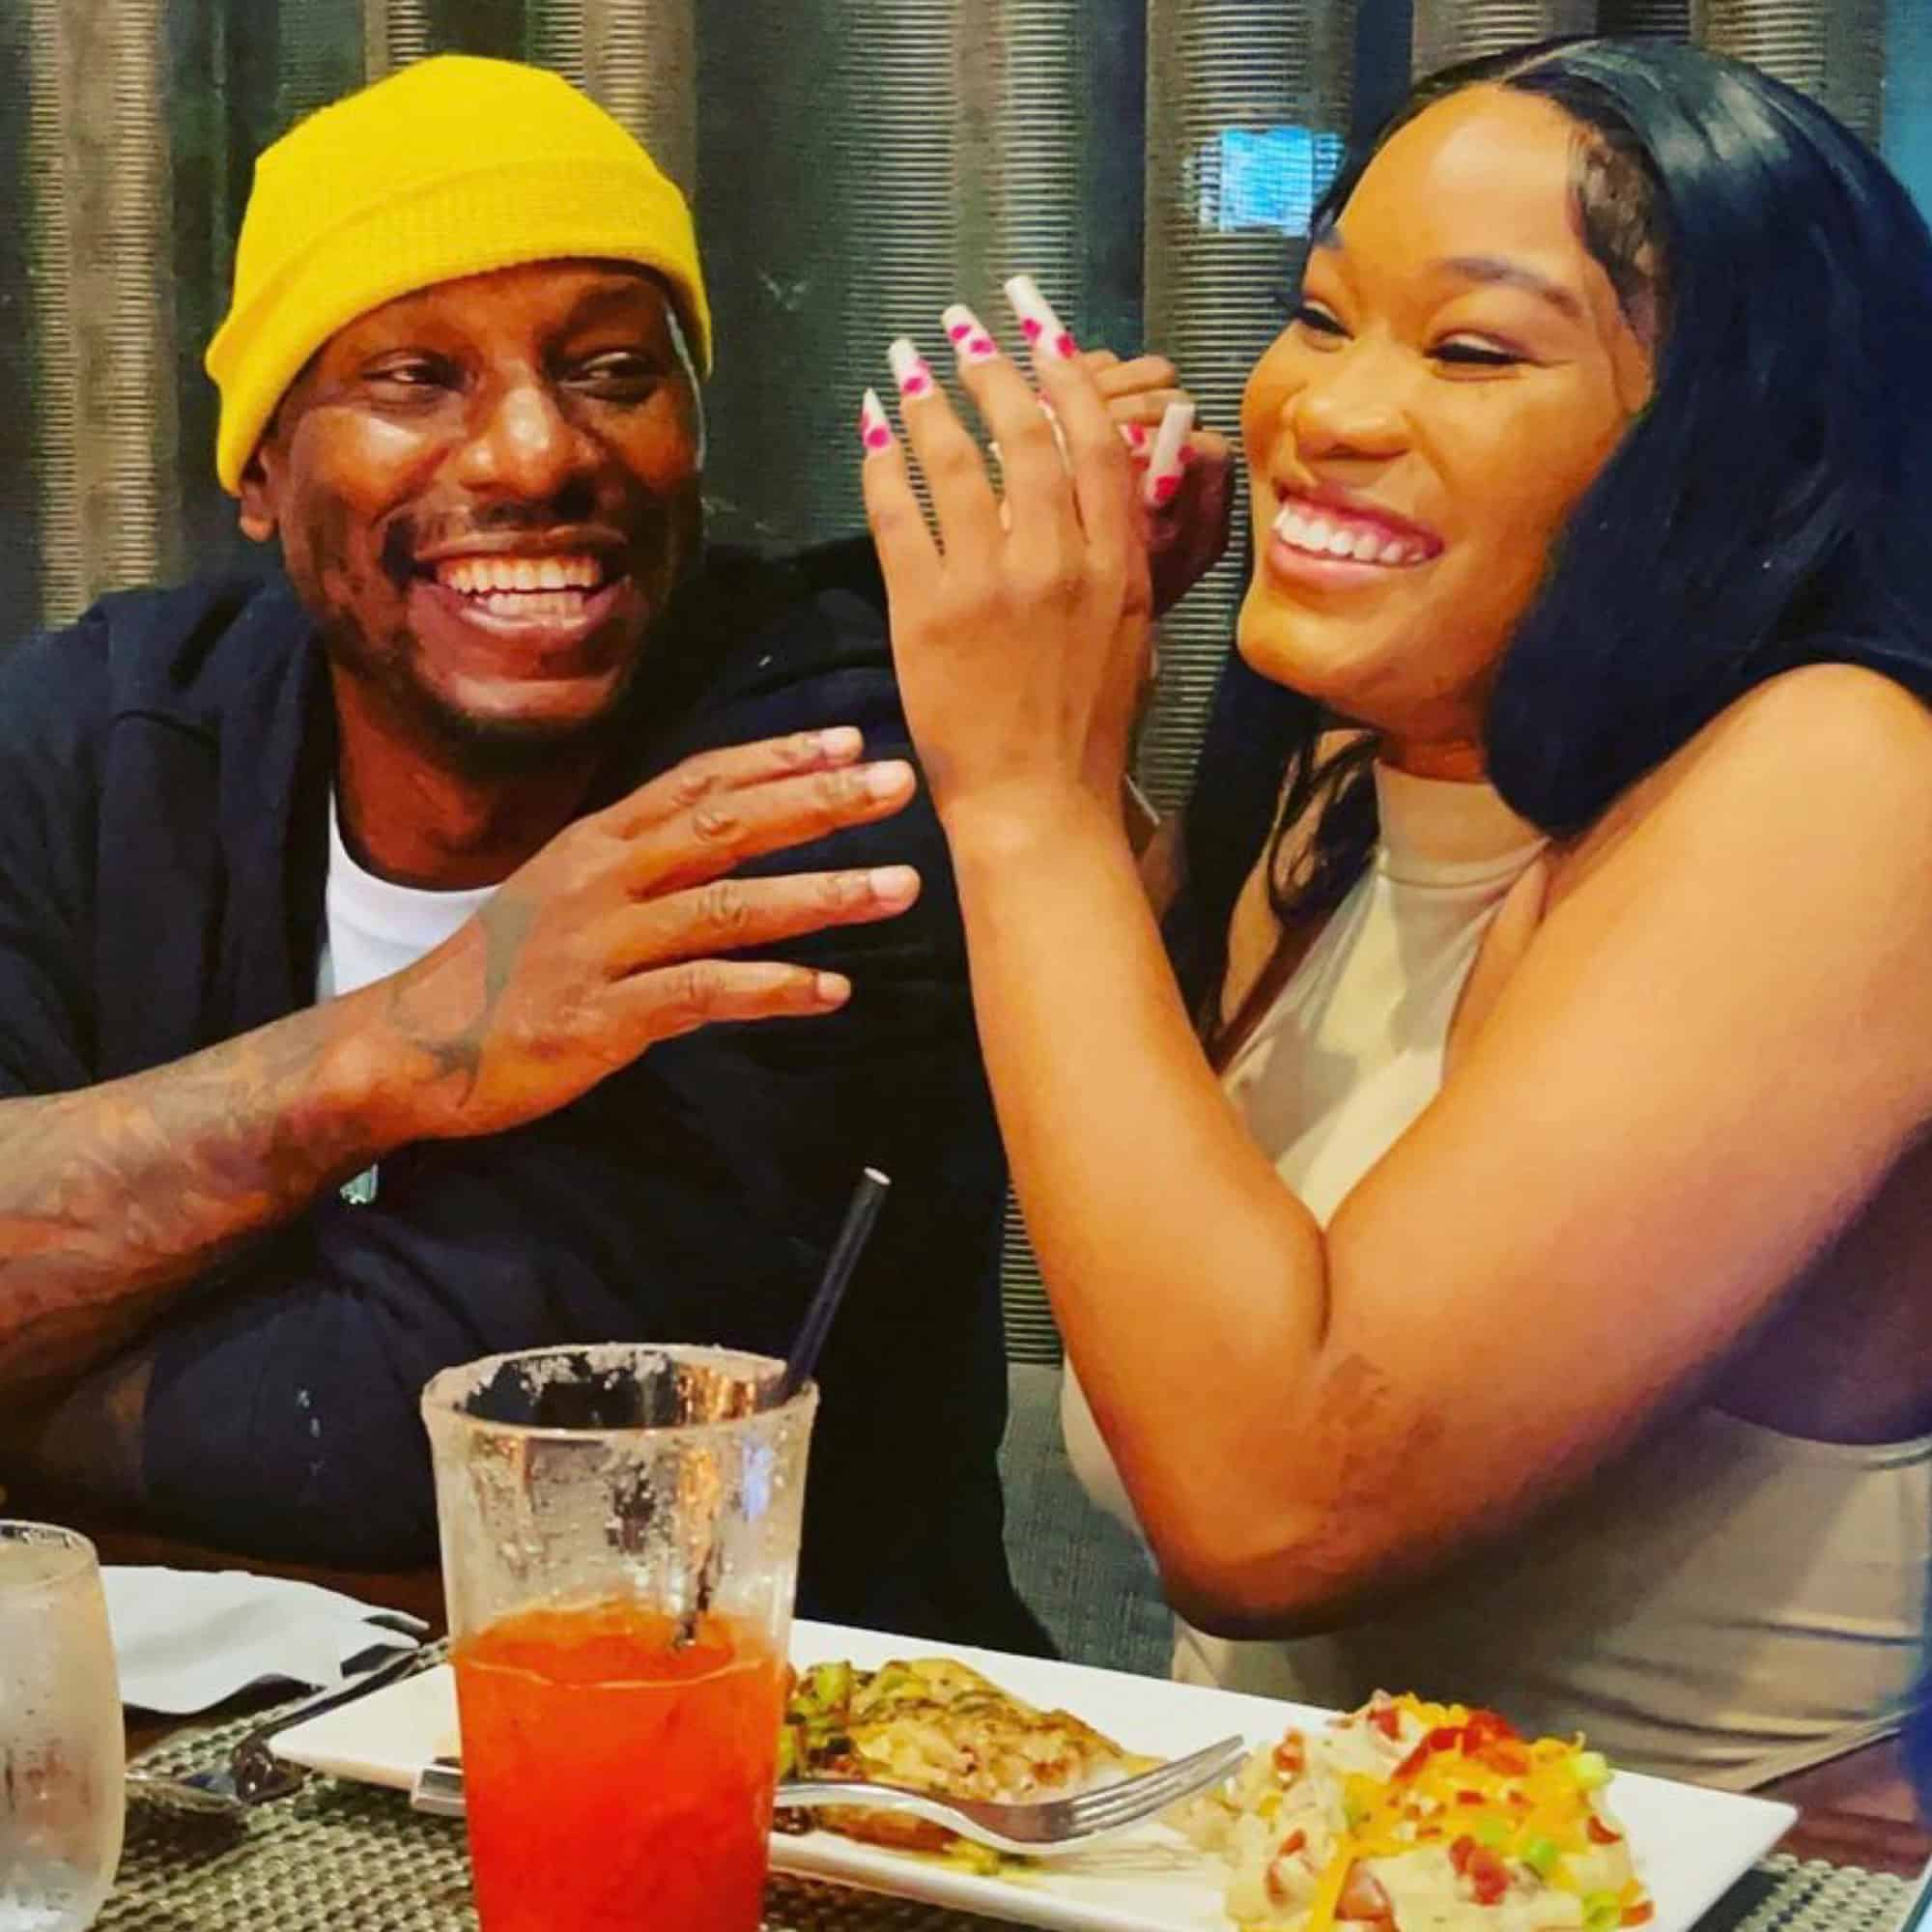 Tyrese took to social media to share the special date night that his girlfriend Zelie Timothy surprised him with.